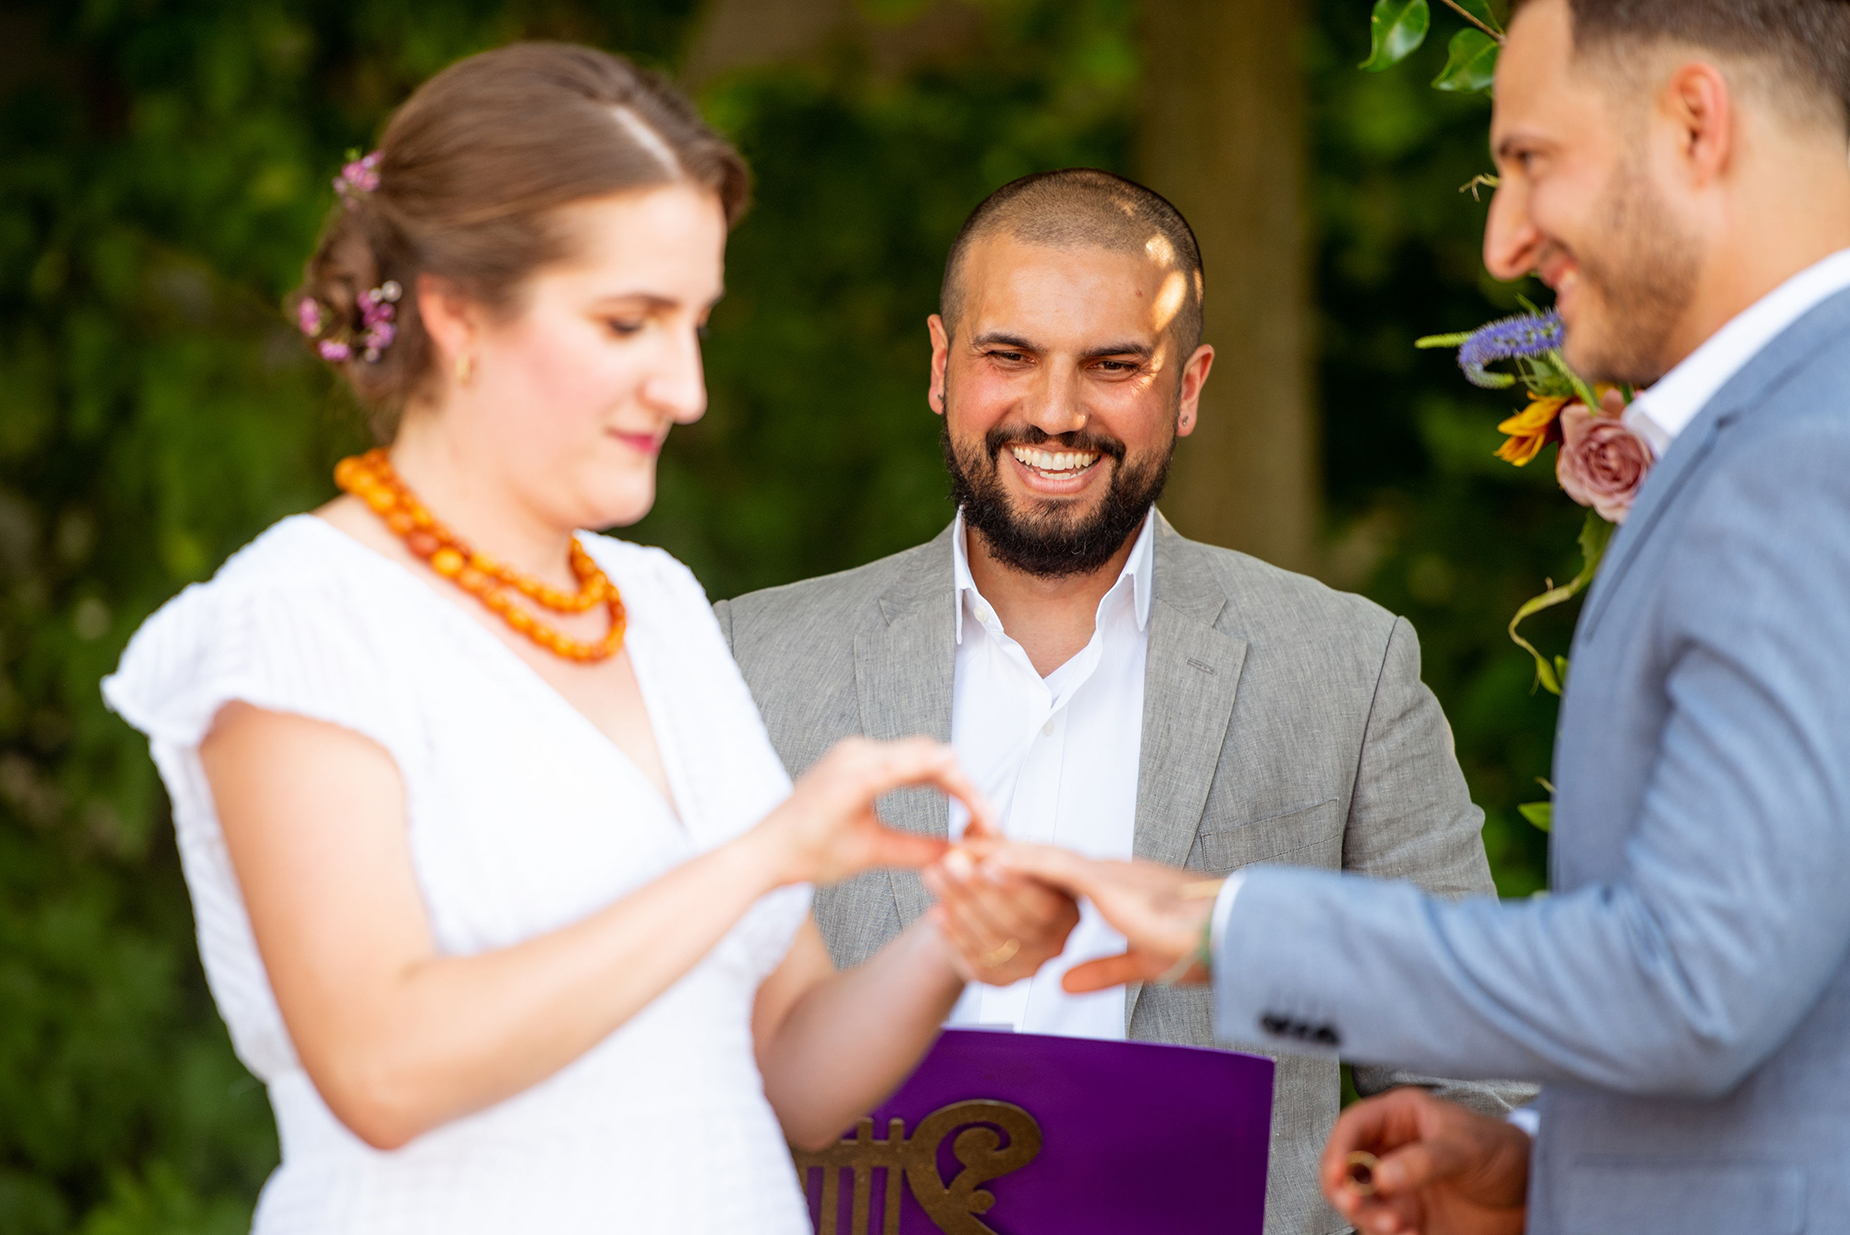 Backyard Wedding Ceremony Photos | The officiant is a friend of the couple